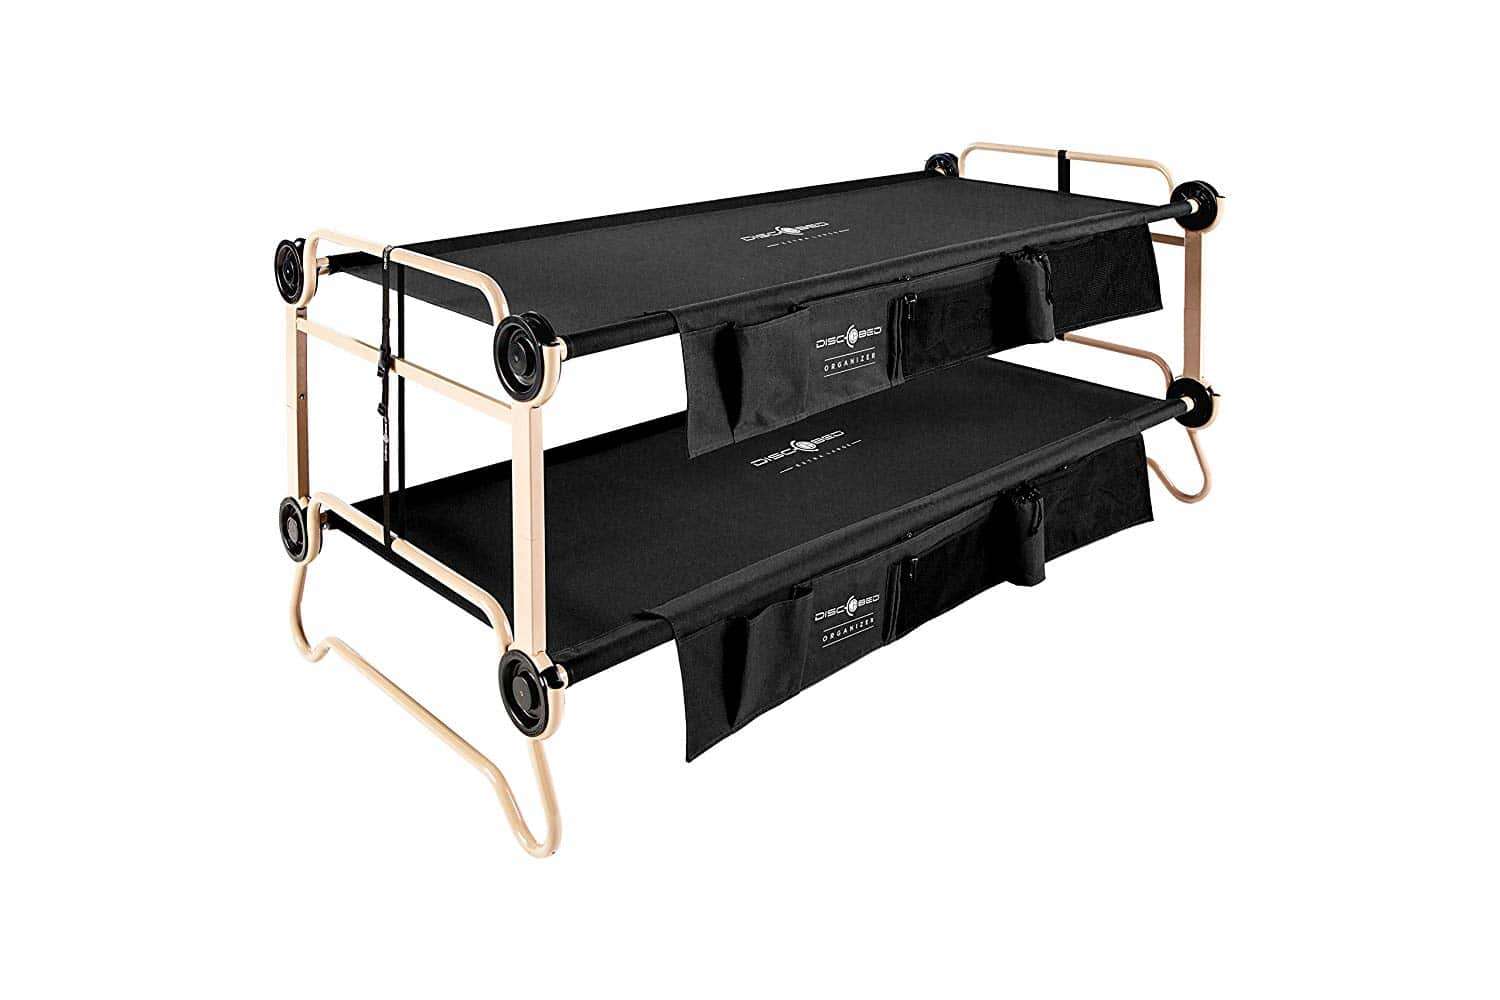 Disc-O-Bed Large with Organizers